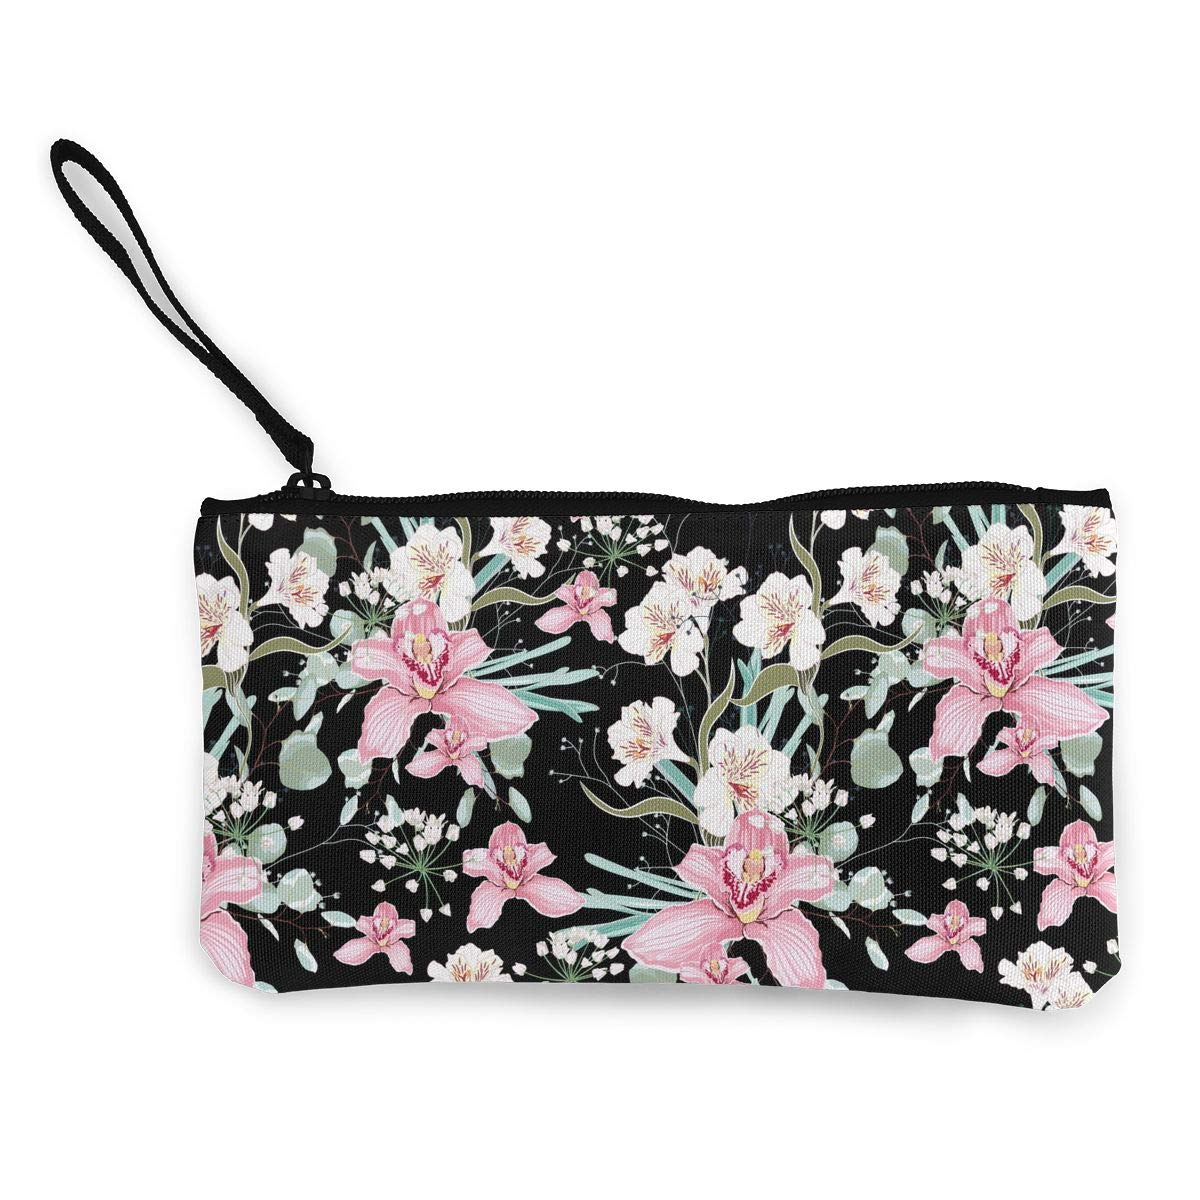 Zipper Small Purse Wallets Orchid Flower Pattern Girls Canvas Change Purse